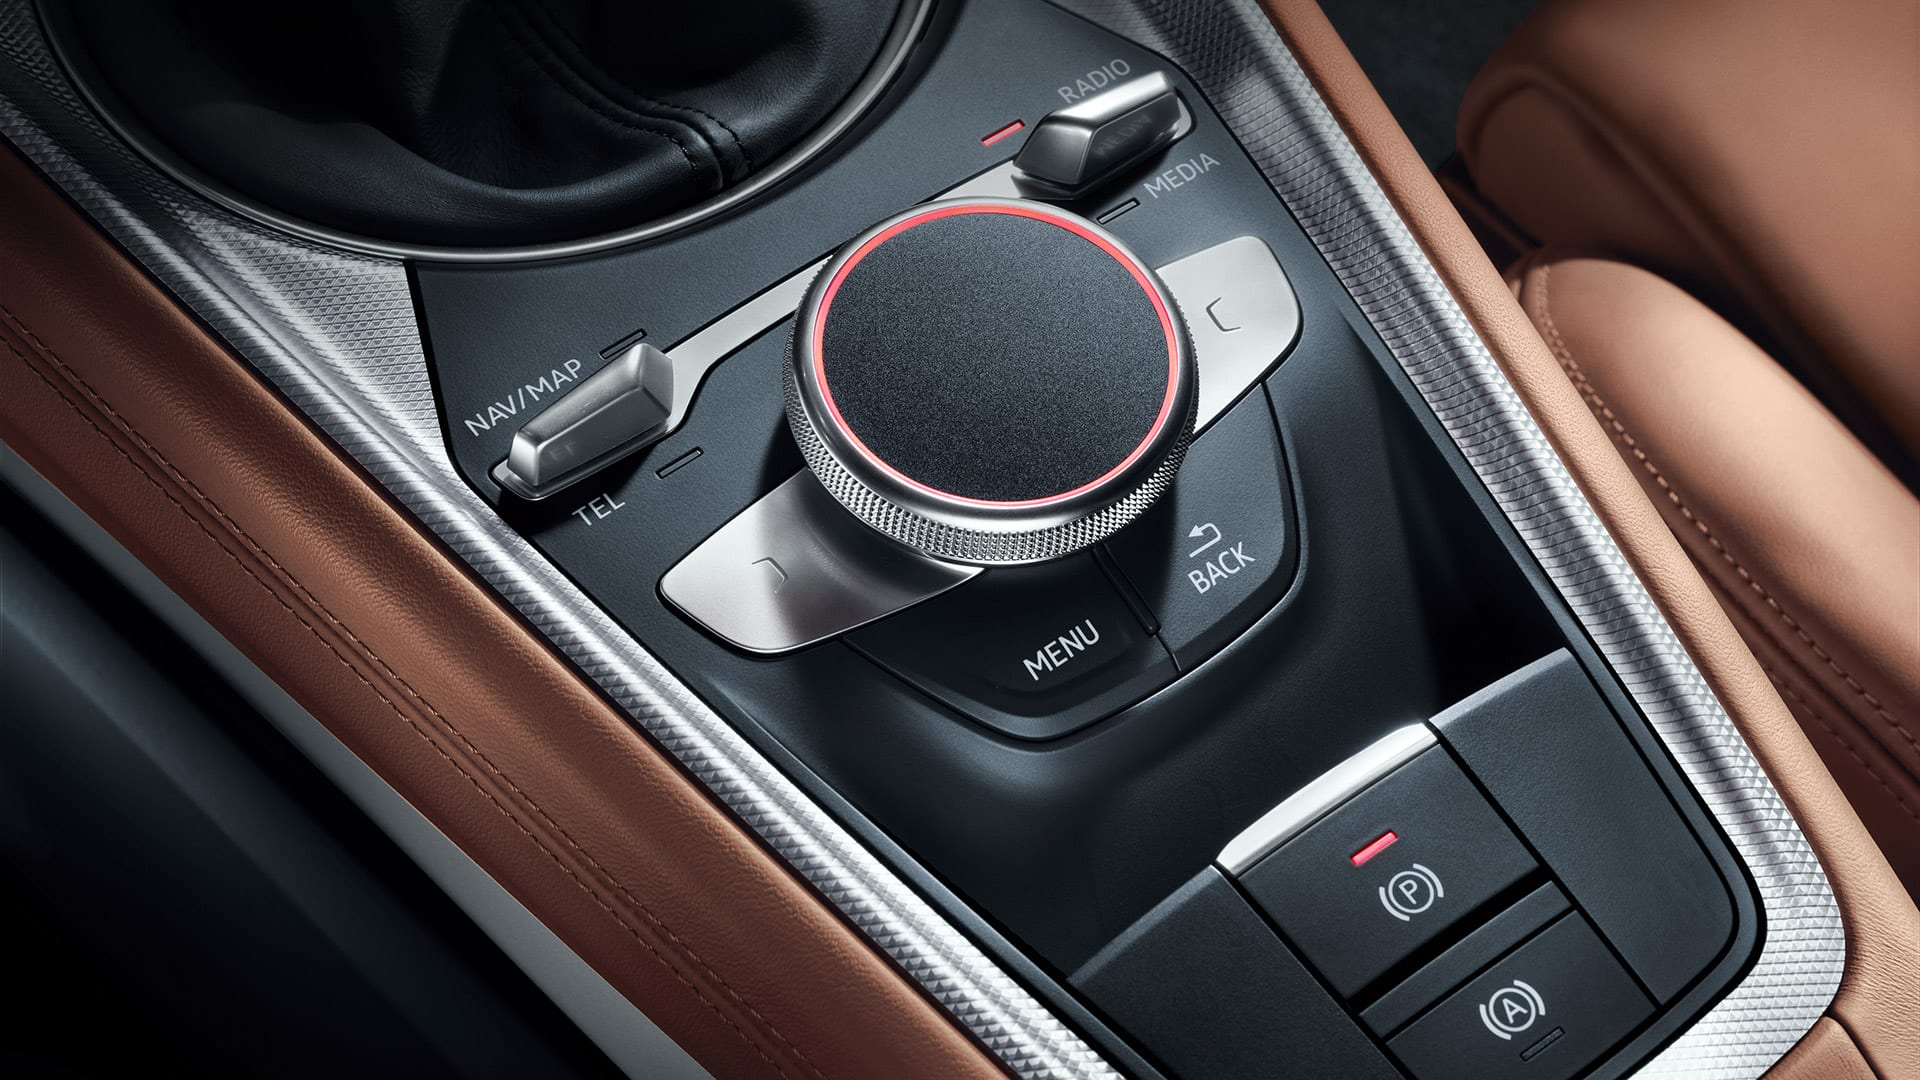 Intelligent assistance systems ensure comfort and safety in the new Audi A8.